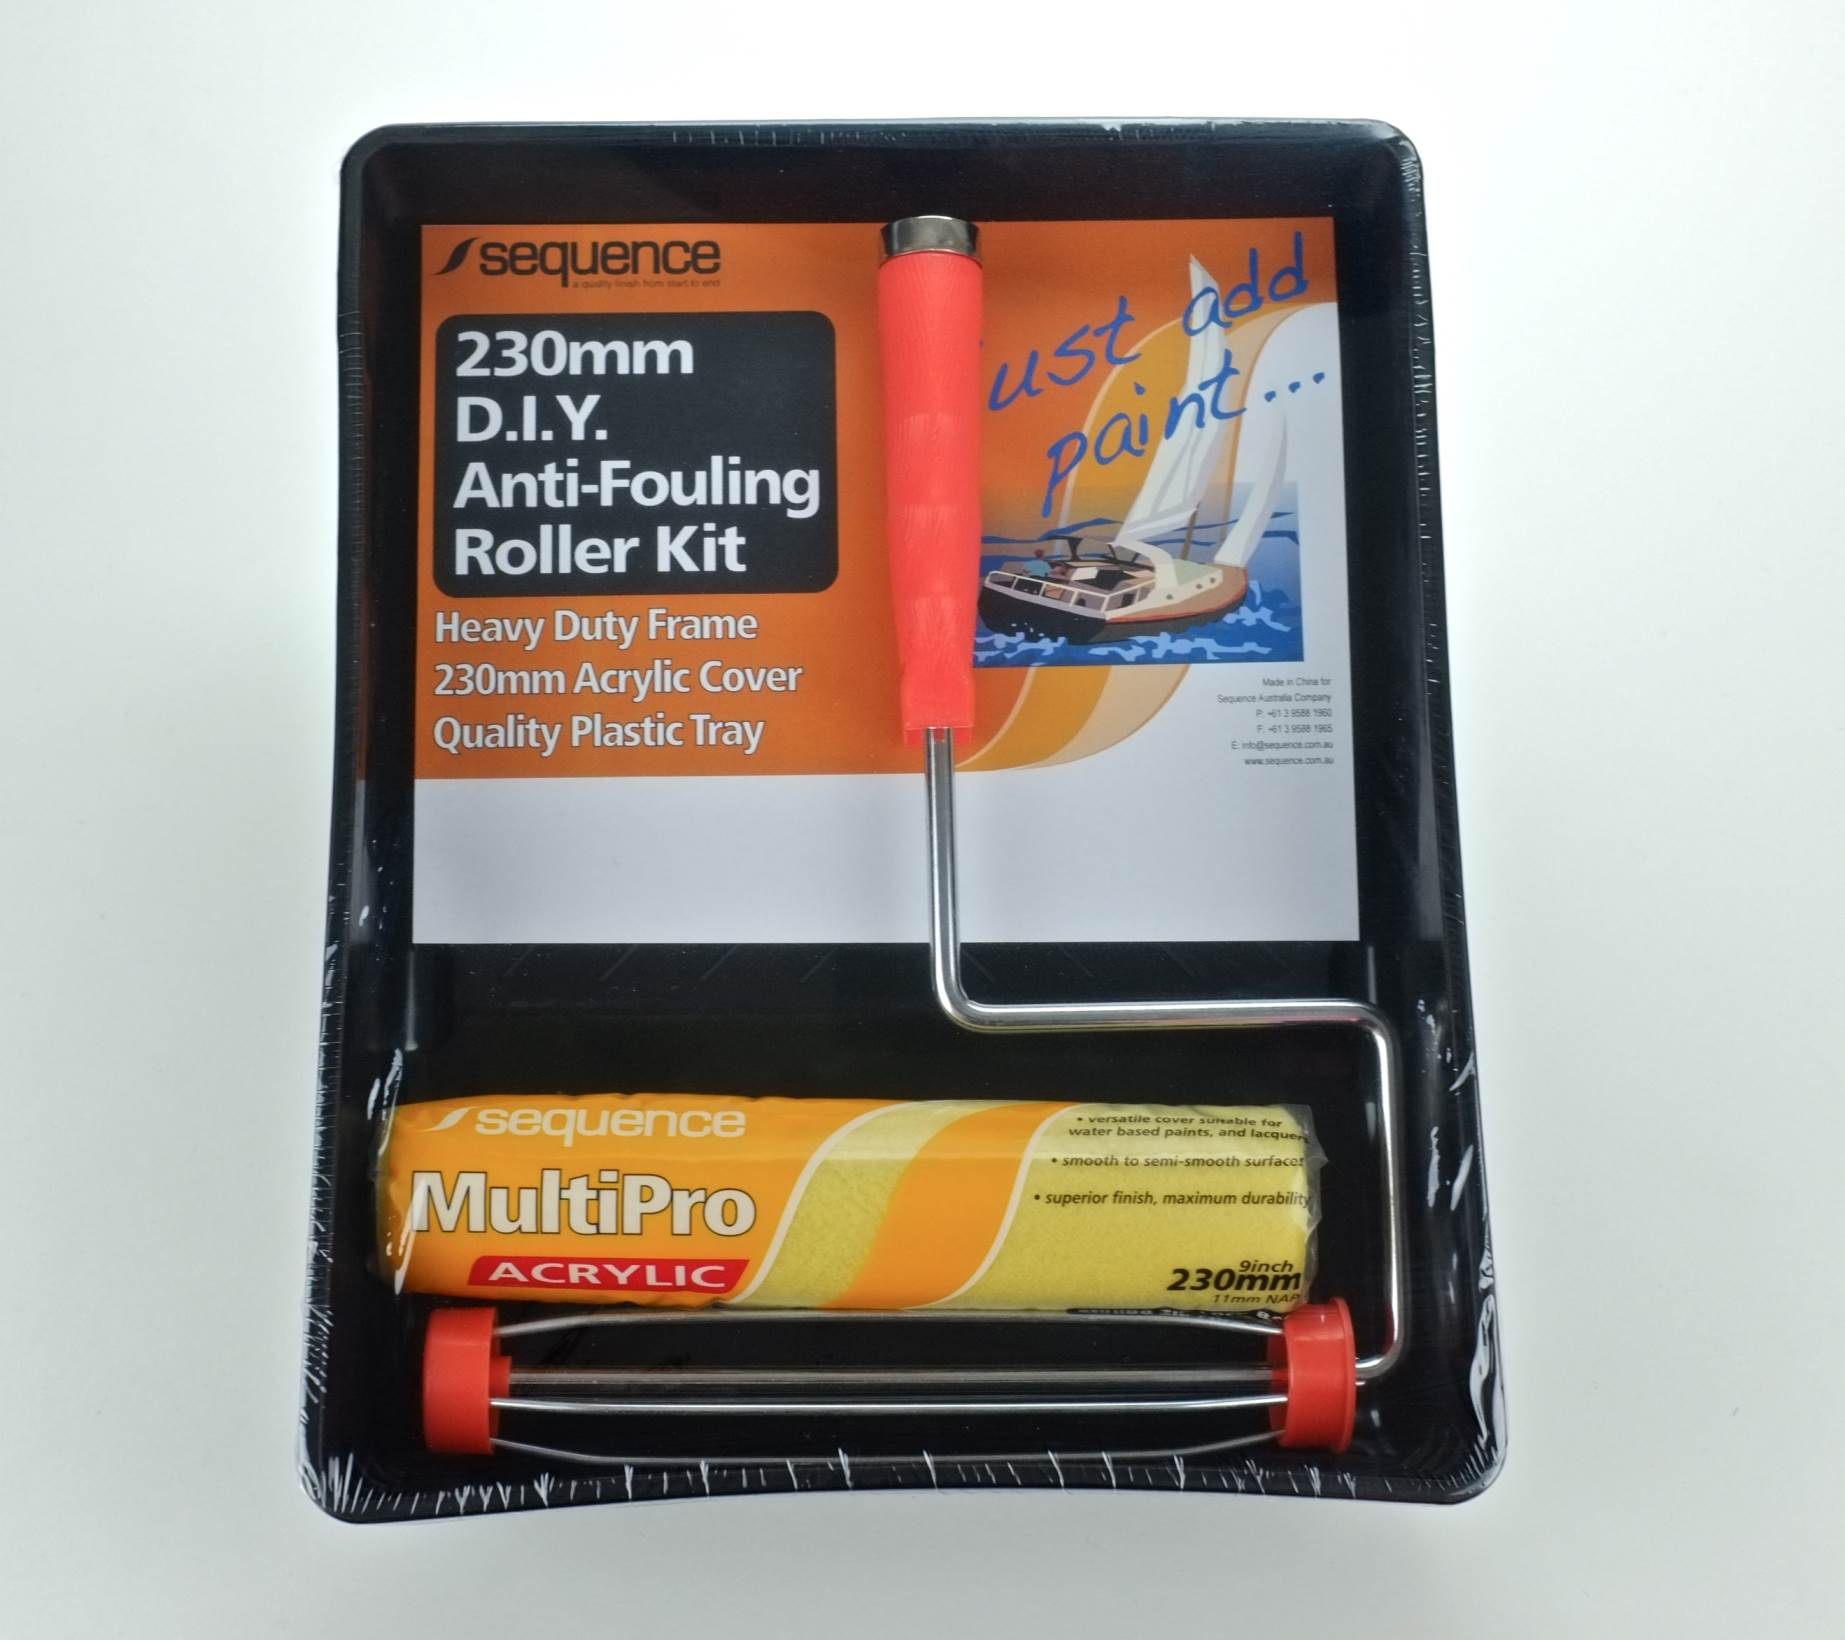 230mm Anti-Fouling Kit - Acrylic Cover